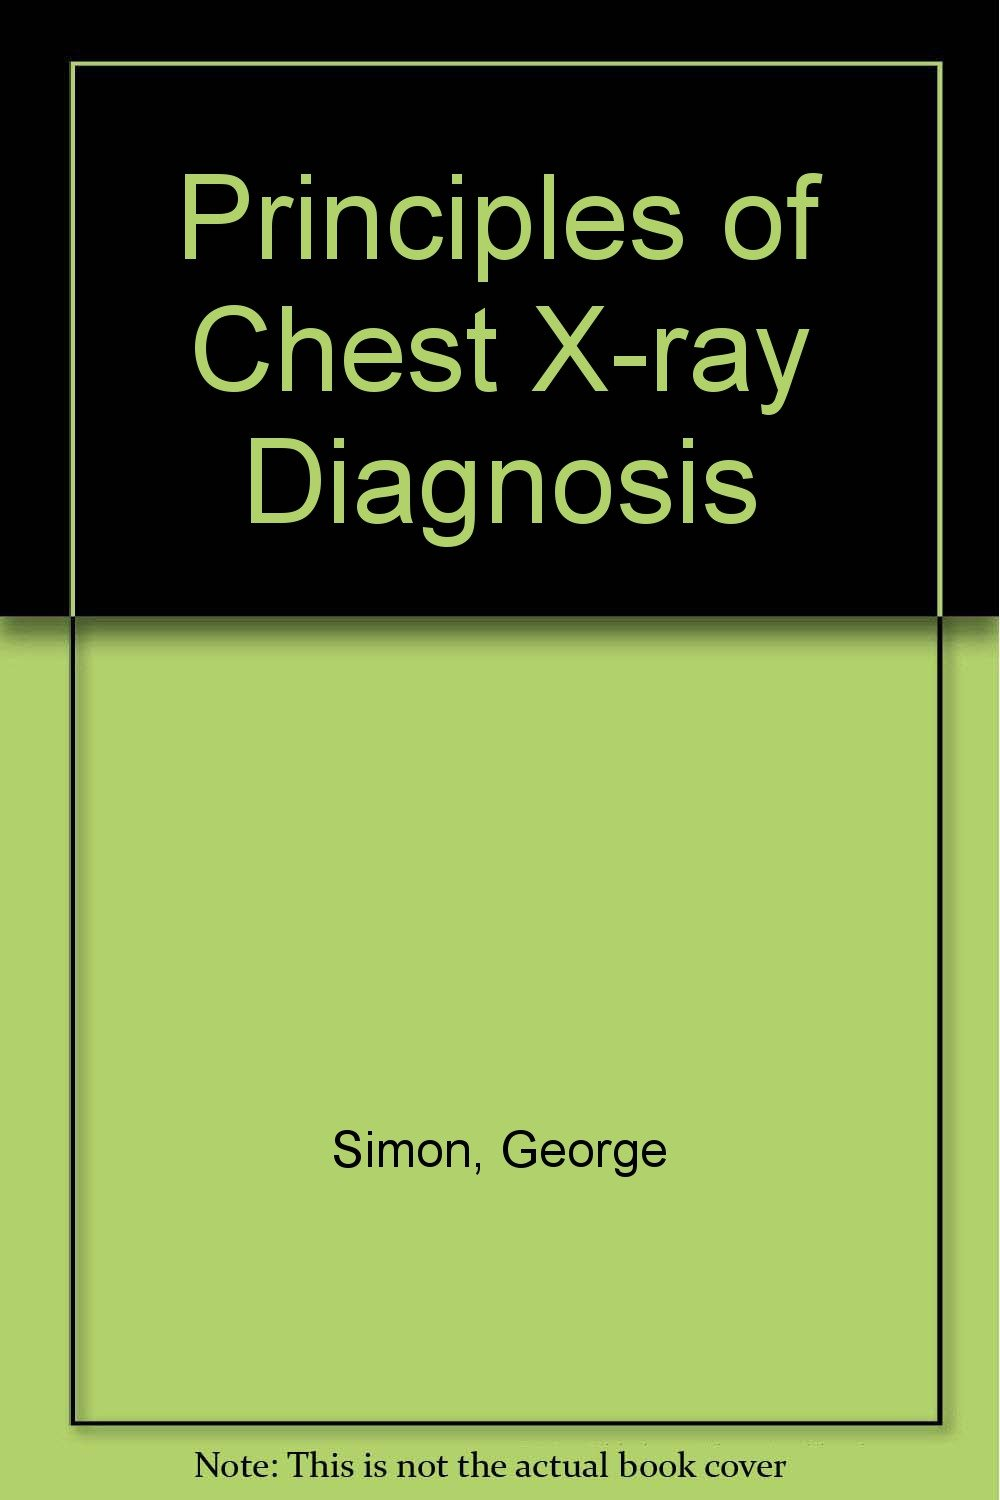 Principles of Chest X-ray Diagnosis: Amazon co uk: George